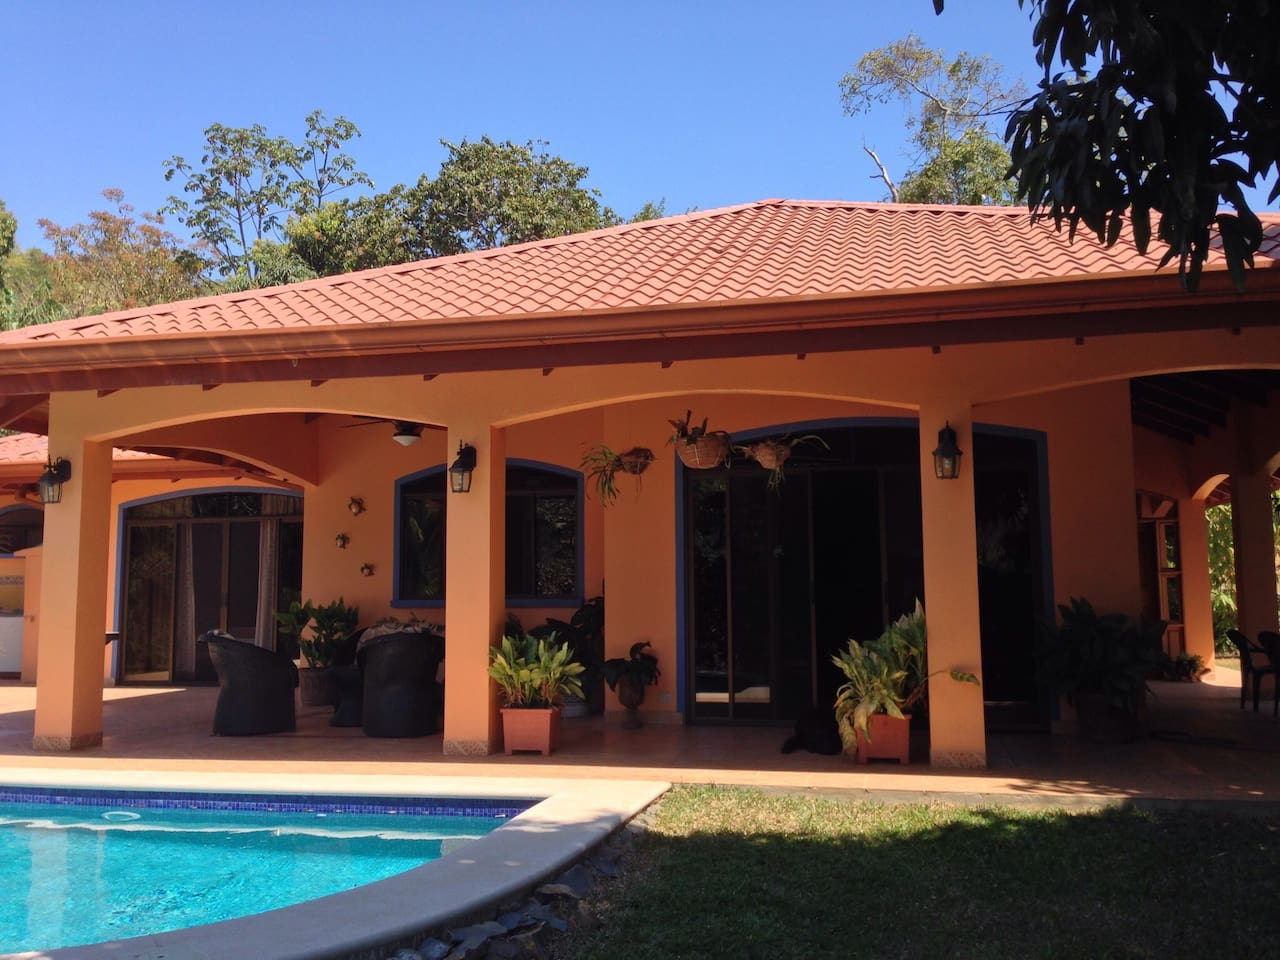 Casa Roberto awaits you!